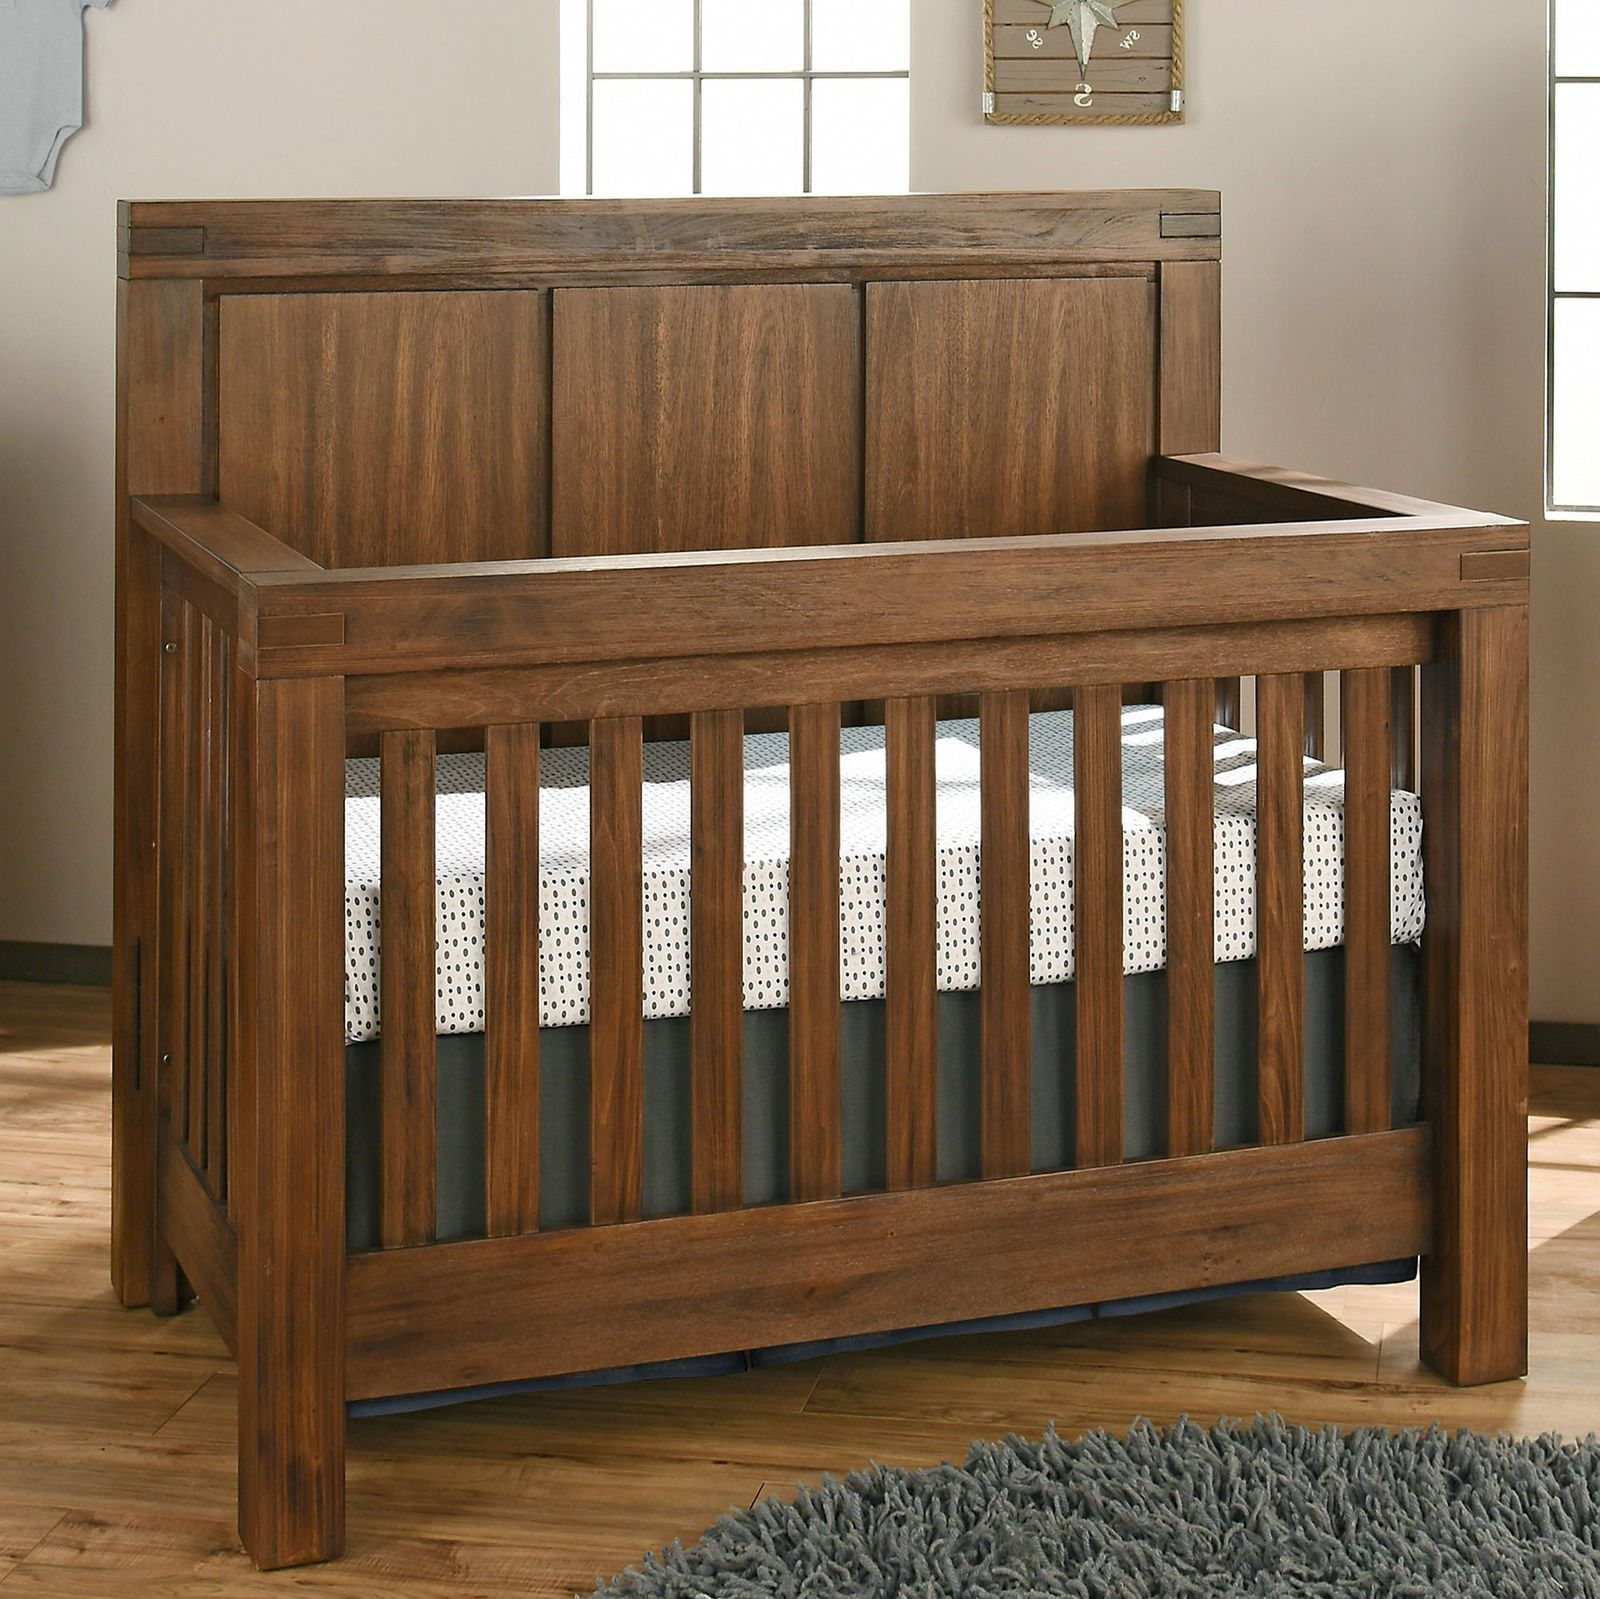 high of iron beautiful amazoncom bed in convertible teen crib wood baby notte fatata pinterest rustic size upholstered kids solid antique s white full knightly end cribs room